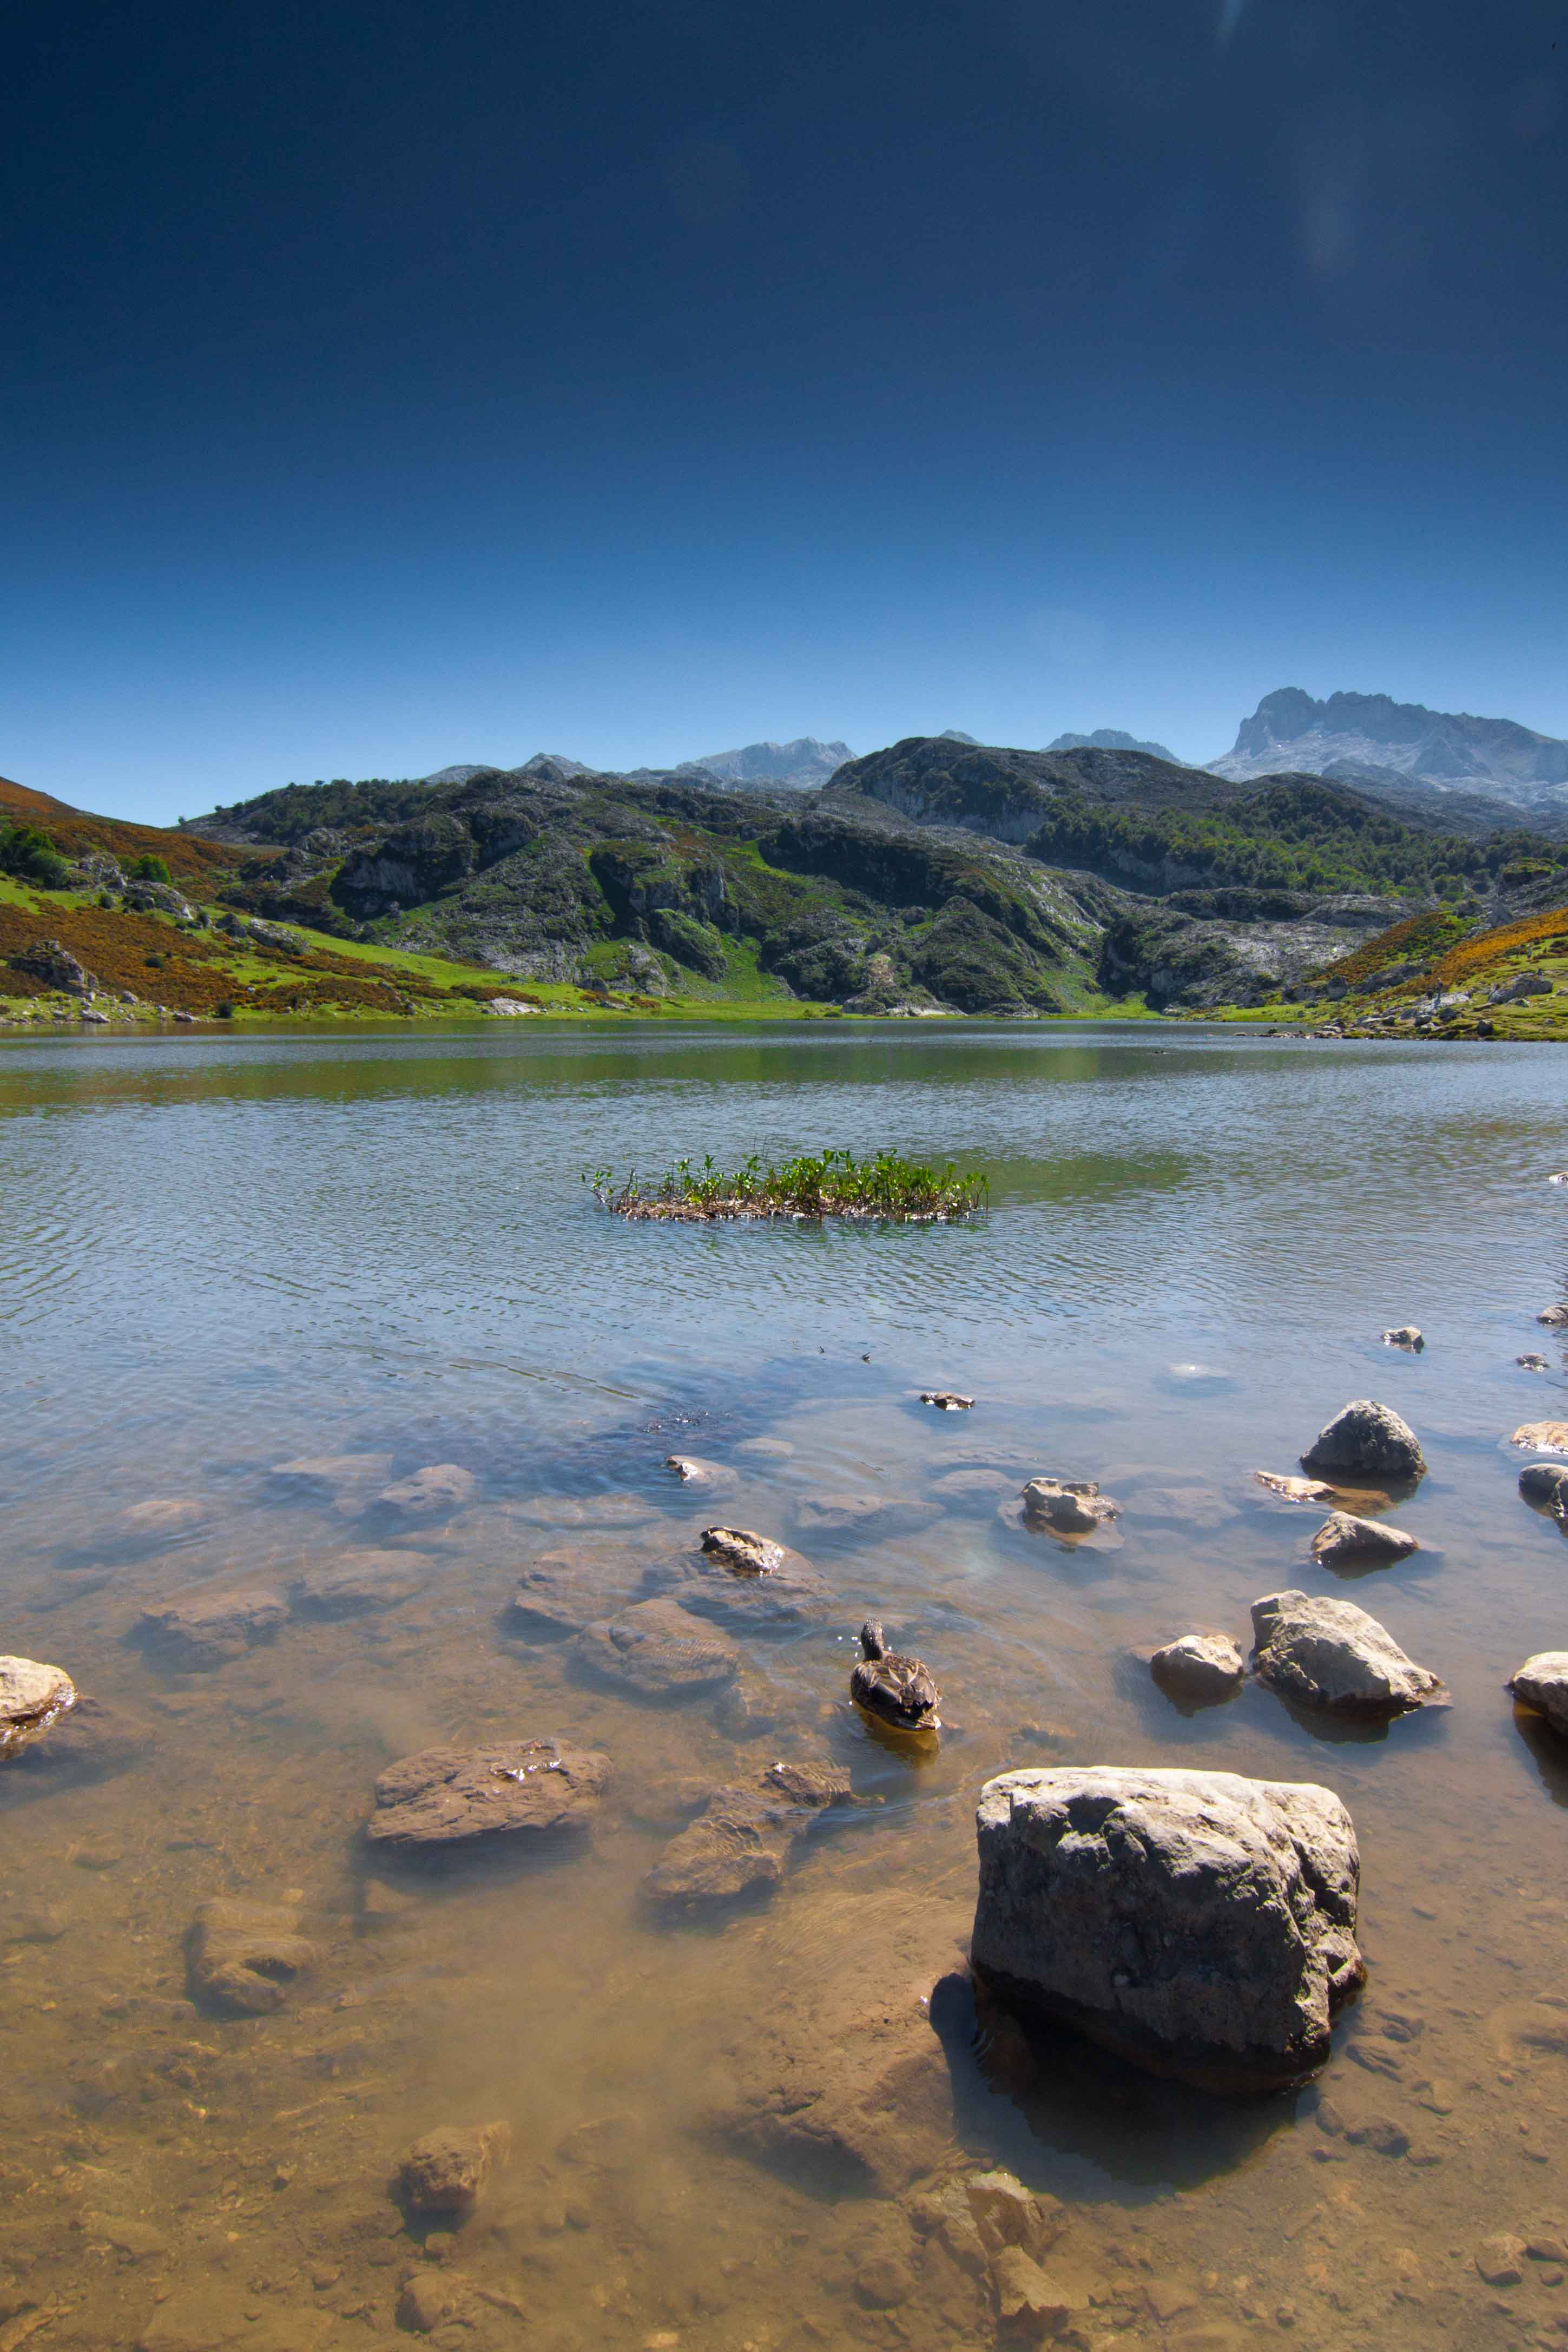 Sand in The Lakes of Covadonga - Enol and Ercina lakes